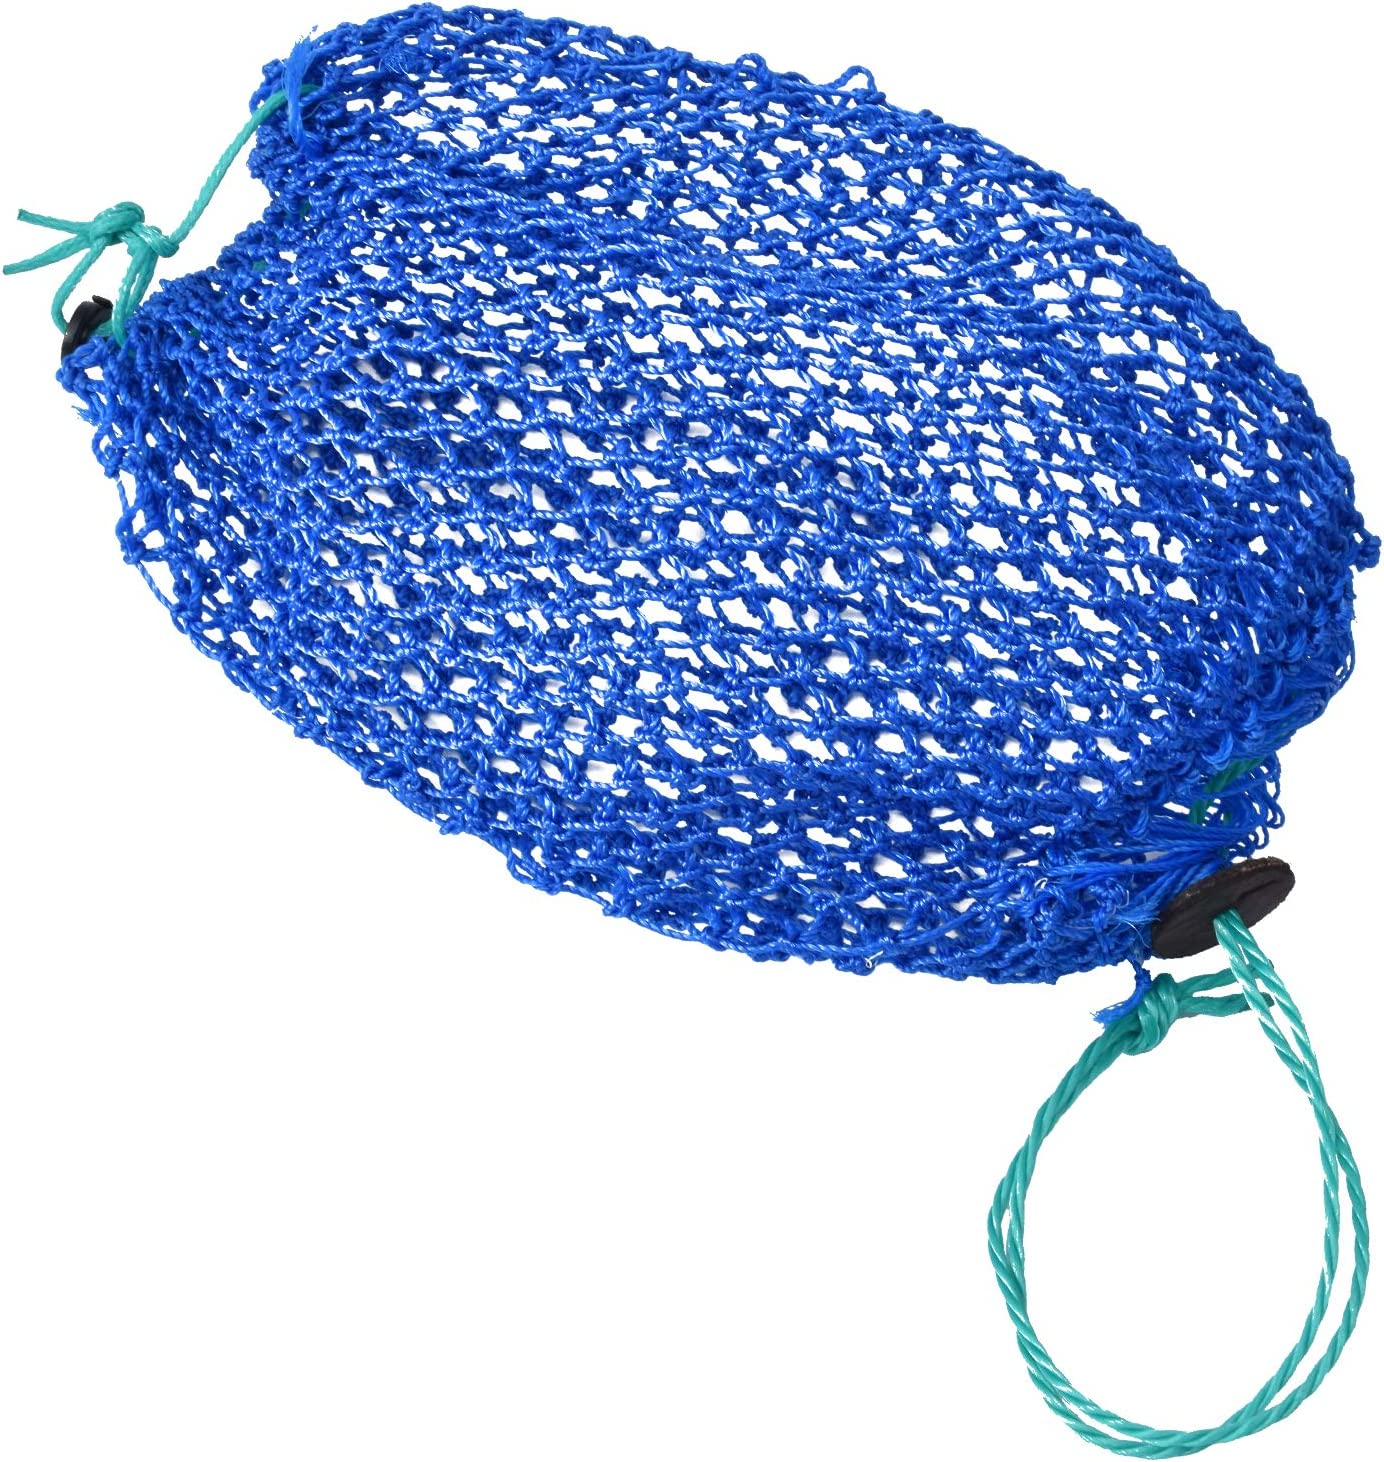 SF 3 Packs Mesh Bait Bags with Rubber Locker for Fishing Crab Traps Catfishing